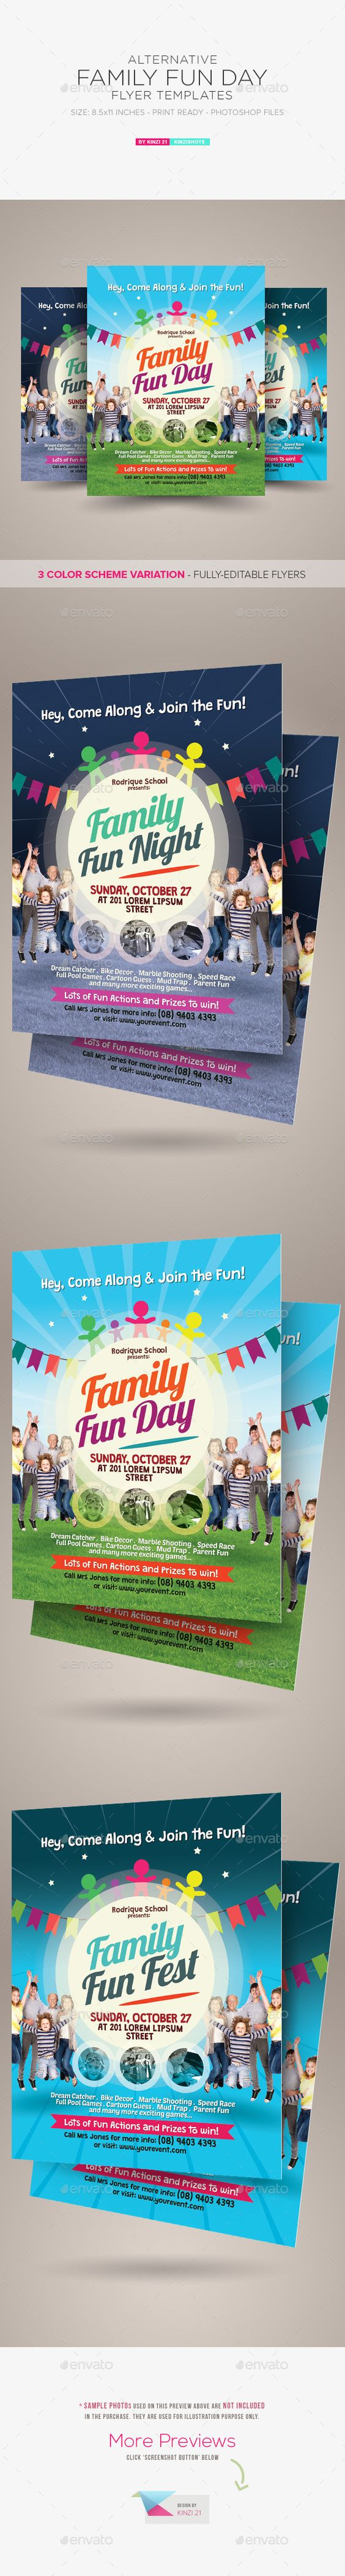 alternative family fun day flyers family fun day fun day and flyers. Black Bedroom Furniture Sets. Home Design Ideas